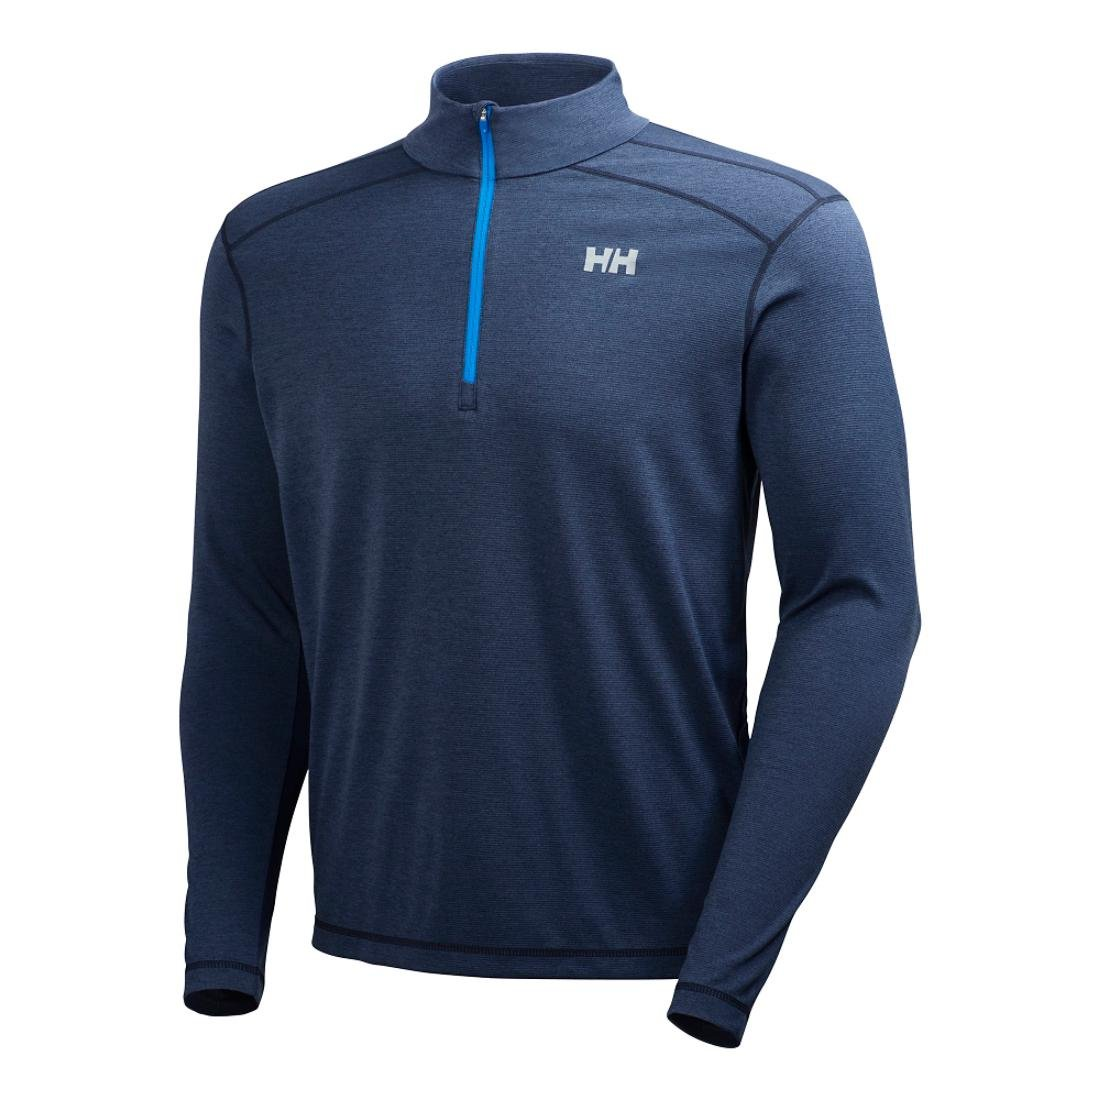 Helly Hansen Herren Top VTR 1 2 Zip Long Sleeve